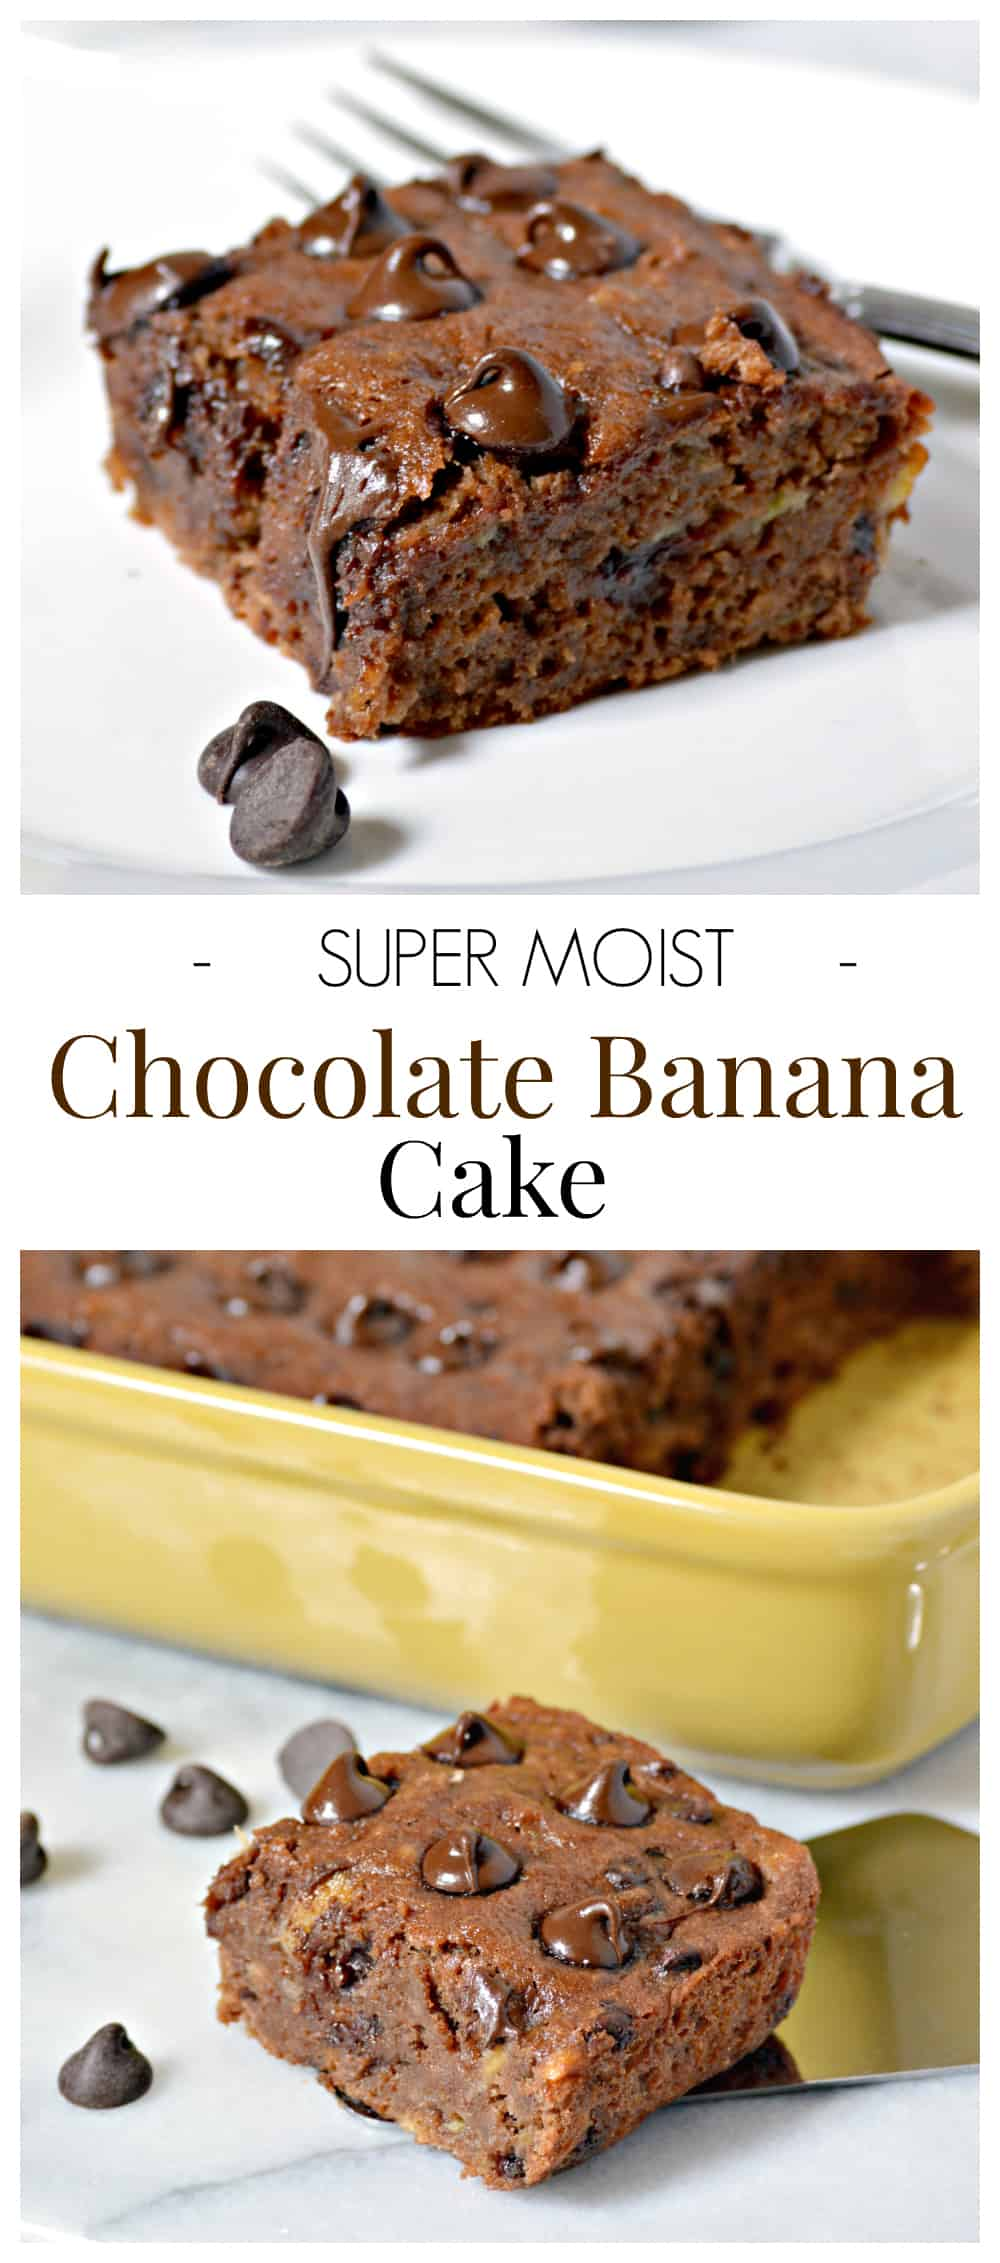 super moist chocolate banana cake recipe